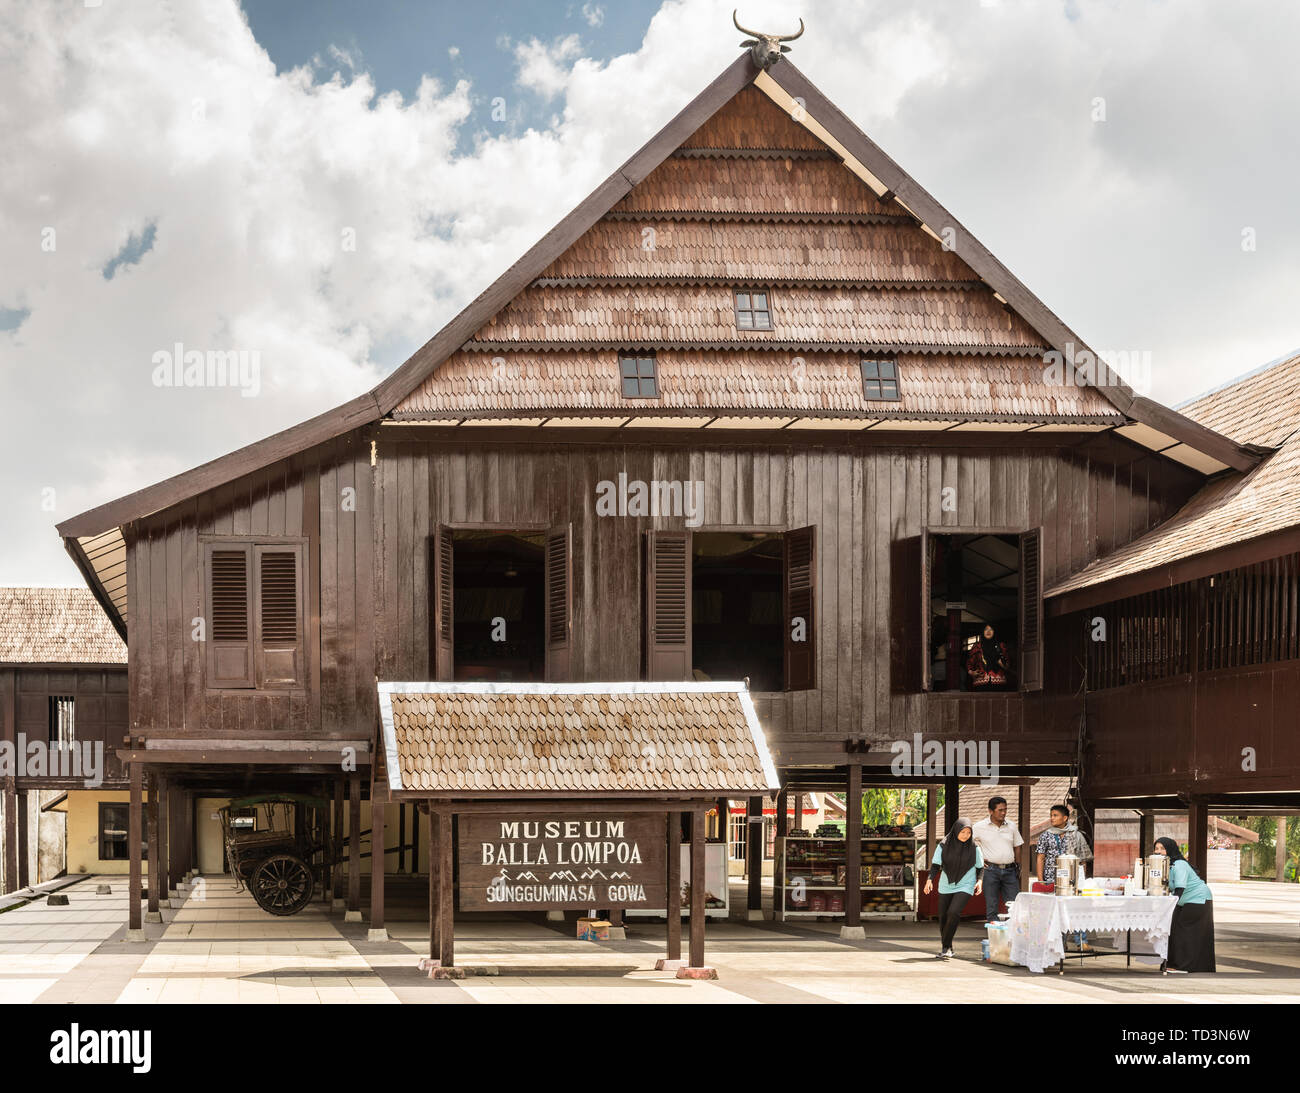 Makassar, Sulawesi, Indonesia - February 28, 2019: Dark brown wooden construction is museum Balla Lompoa, former palace of Gowa Kingdom. People offer  - Stock Image